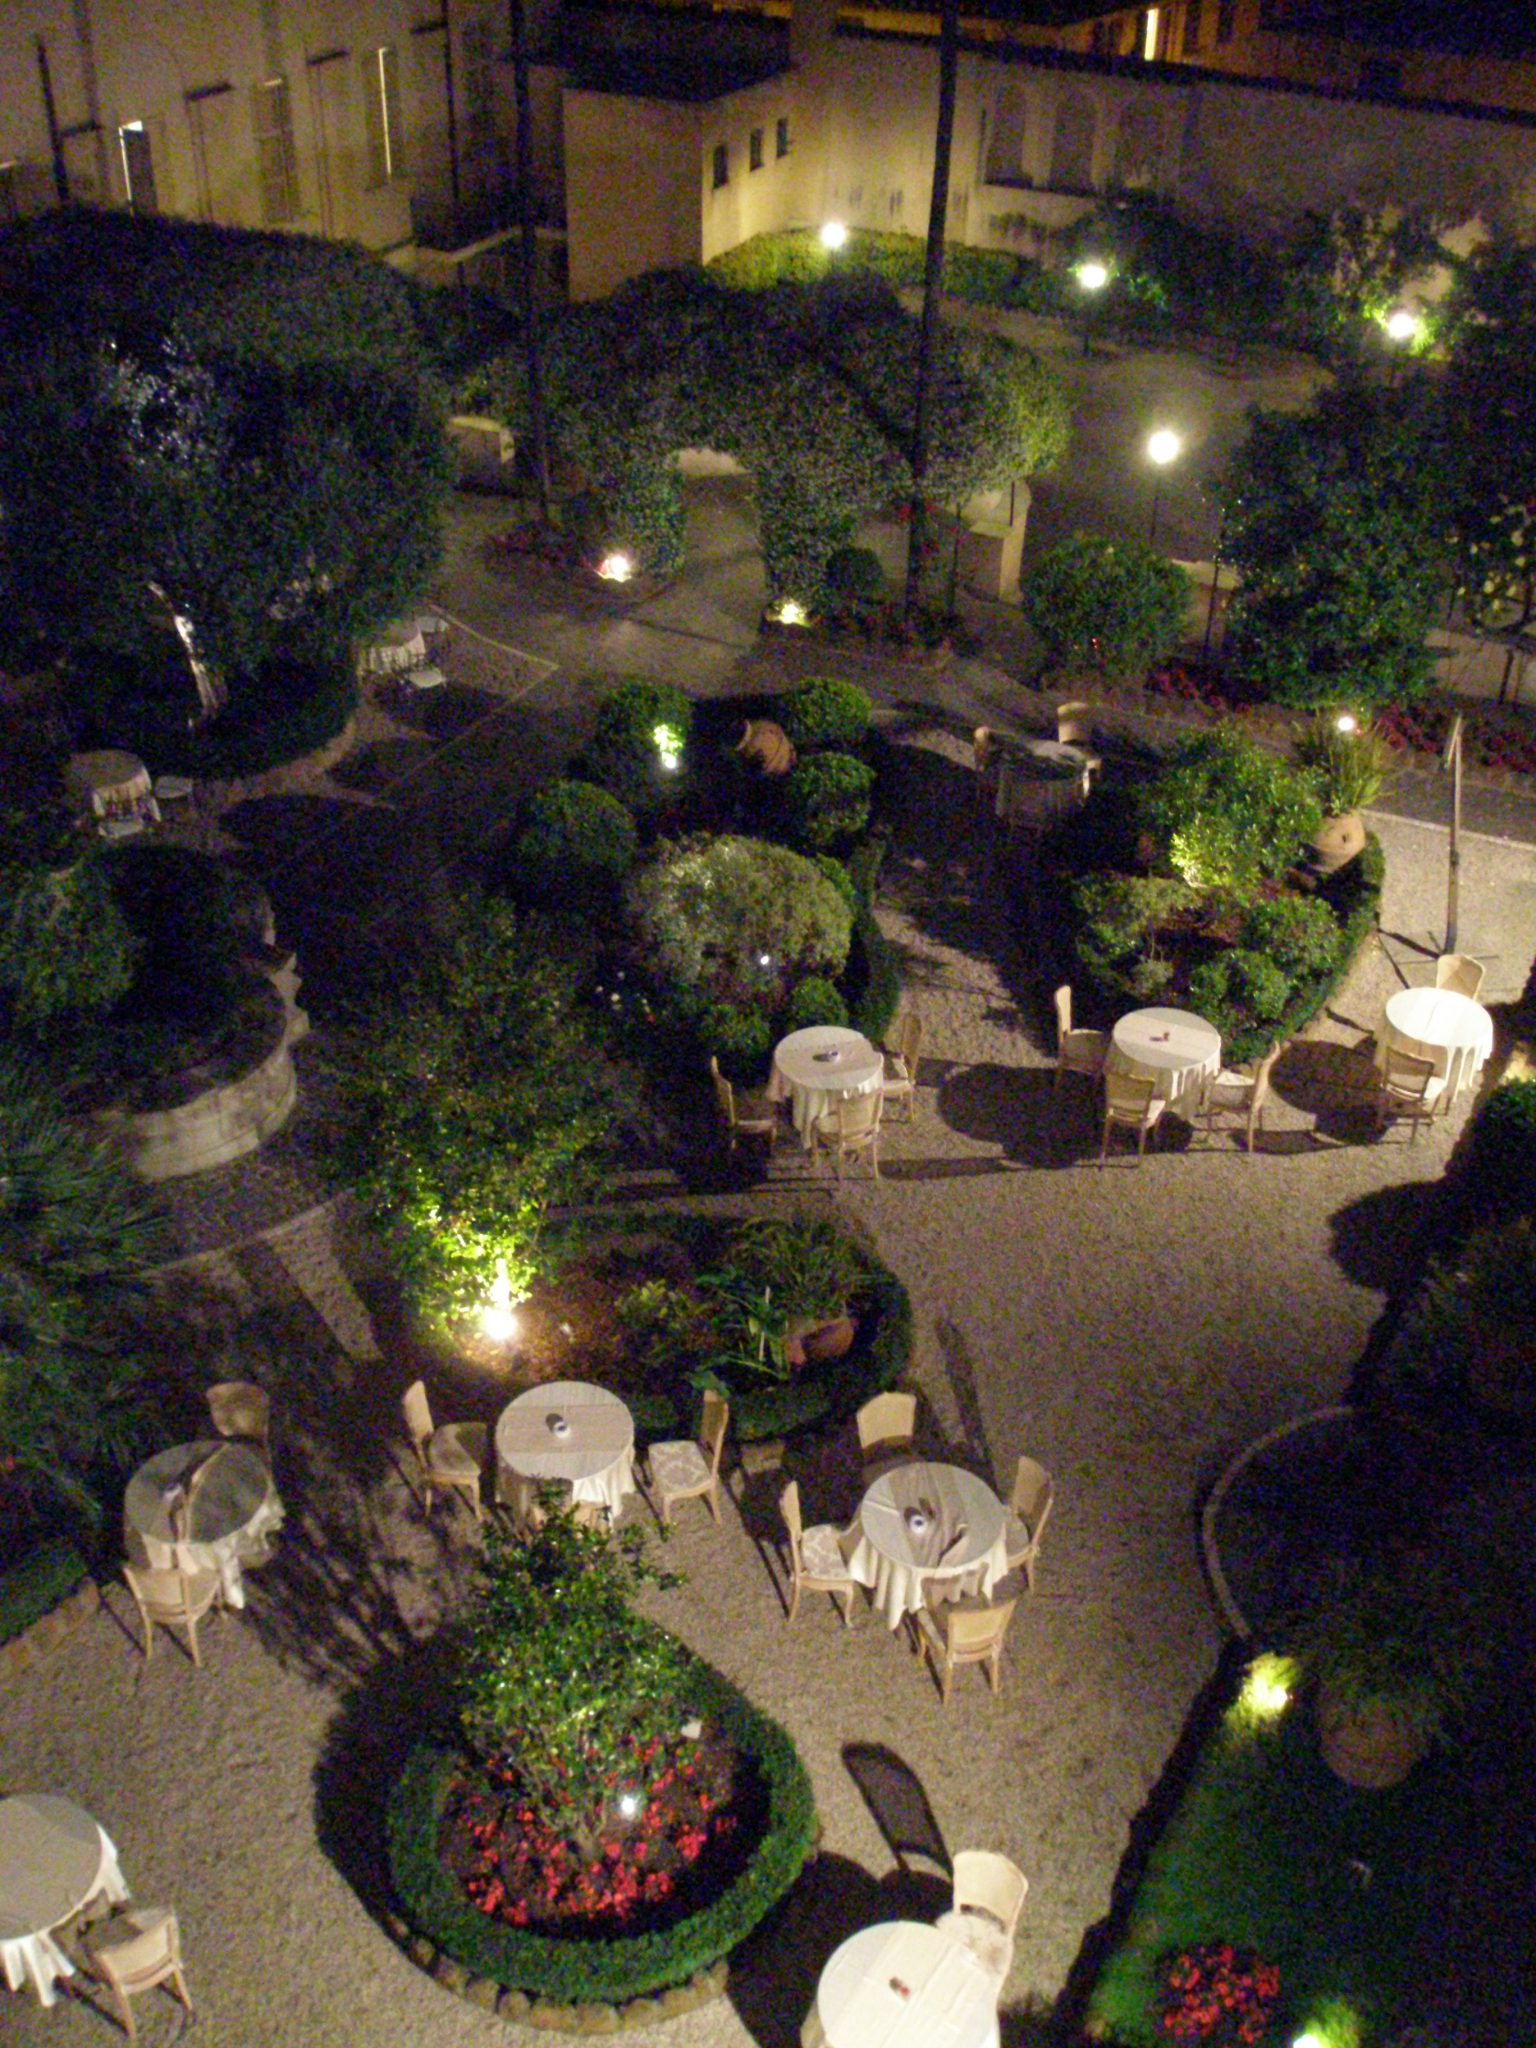 The Courtyard, on the night of Friday, May 9, 2014.